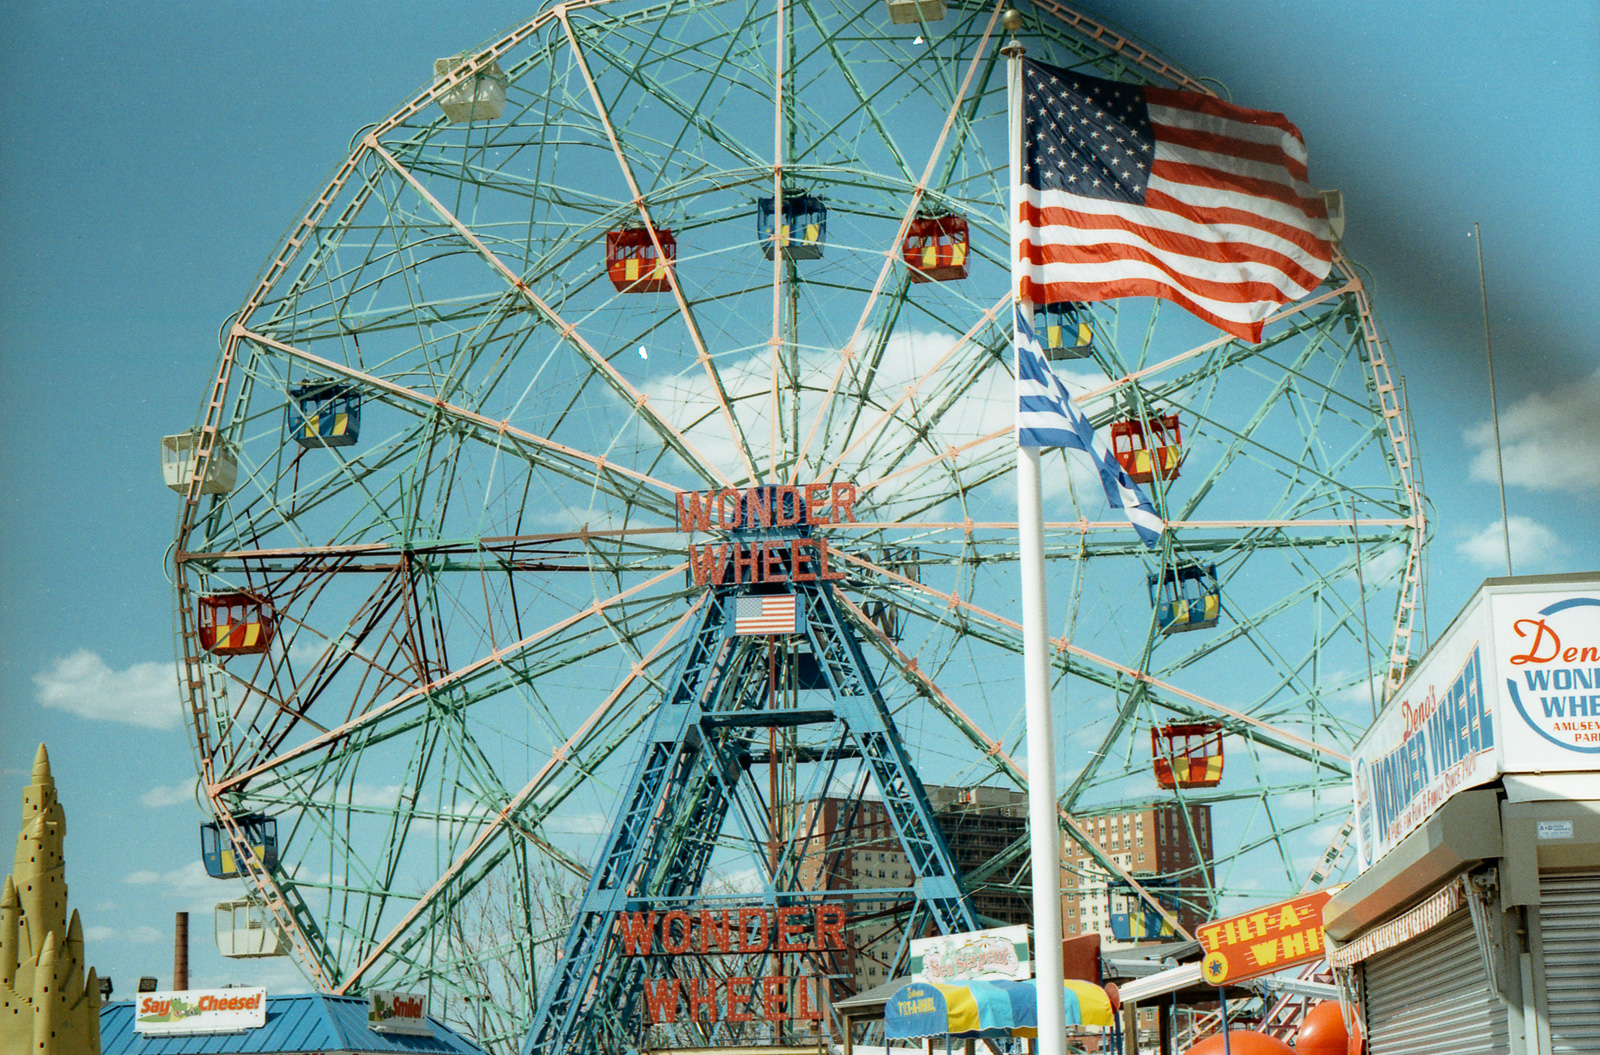 Wonder wheel and american flag